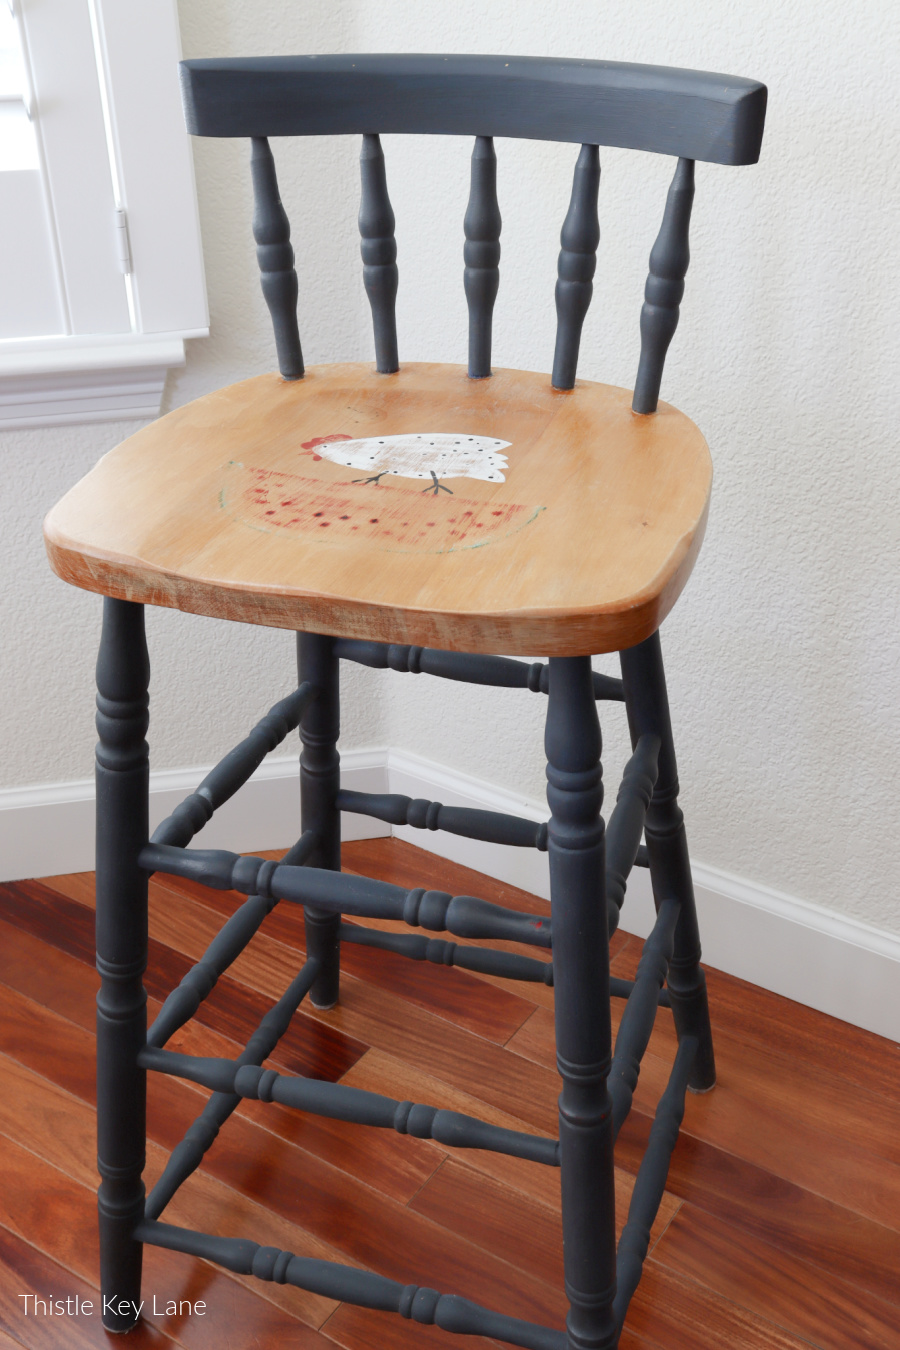 Vintage Windsor chair painted with a chicken.